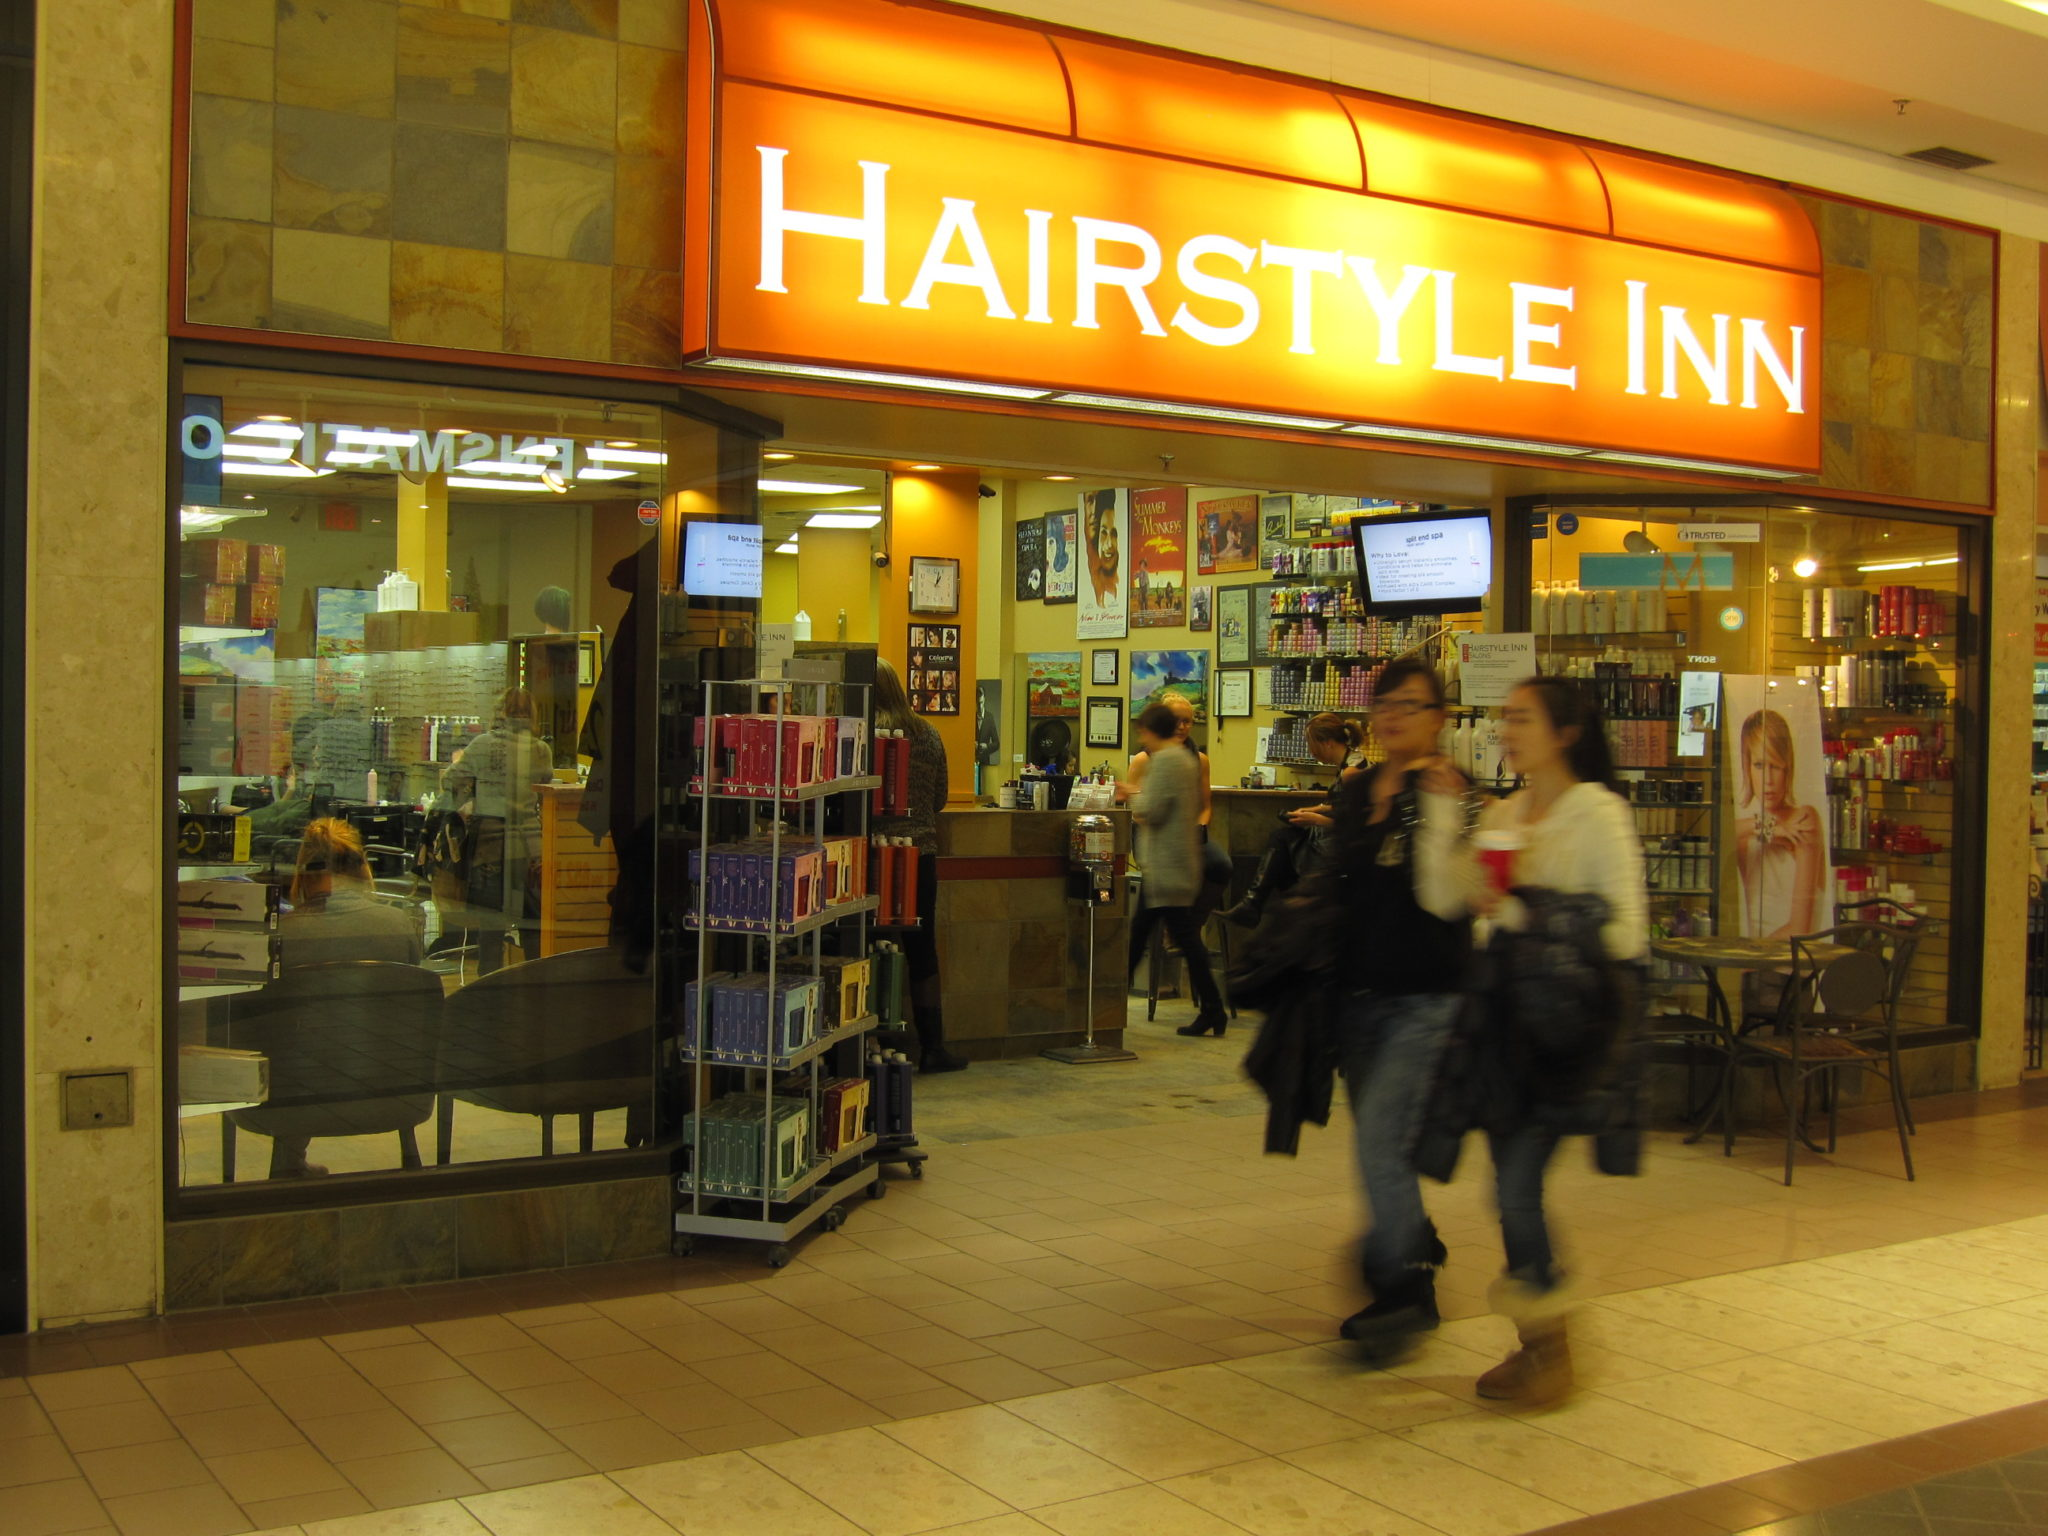 Front view of Hairstyle Inn, Centre Mall at night